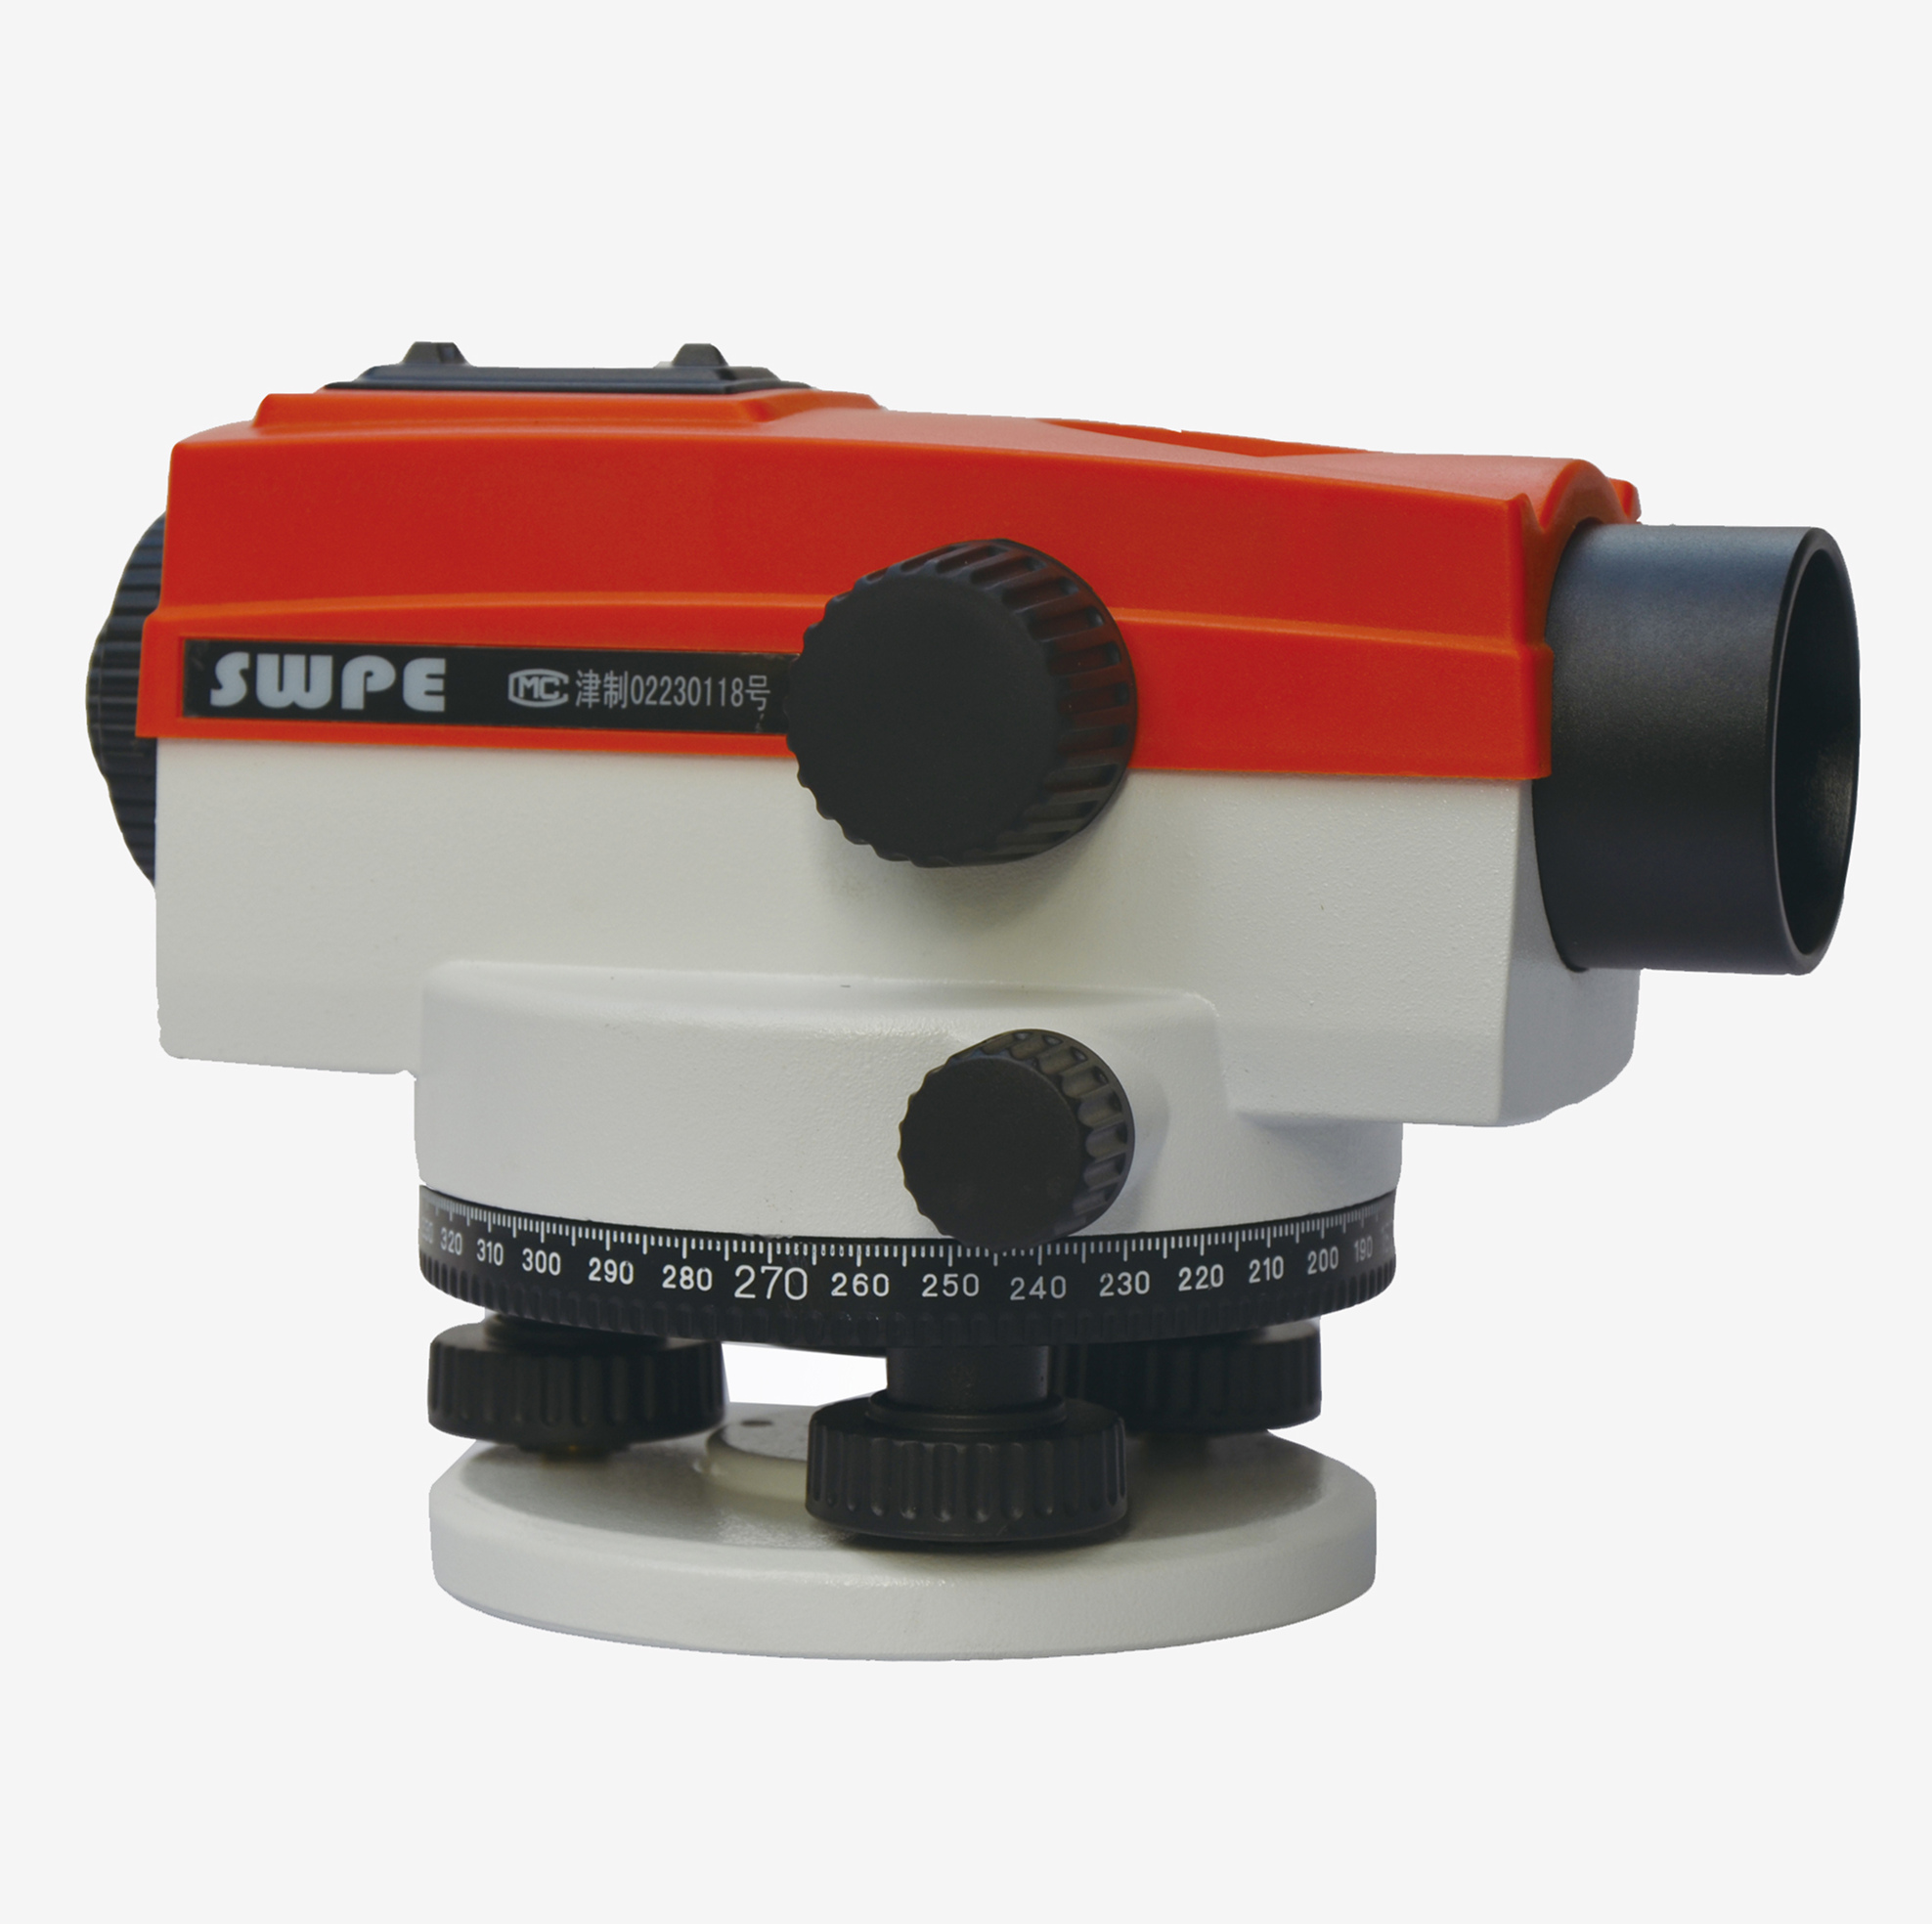 High Quality Auto-matic Level 32X Survey Instruments DS32-2 Optical Level Self-Leveling Tool Automatic Level /auto Level